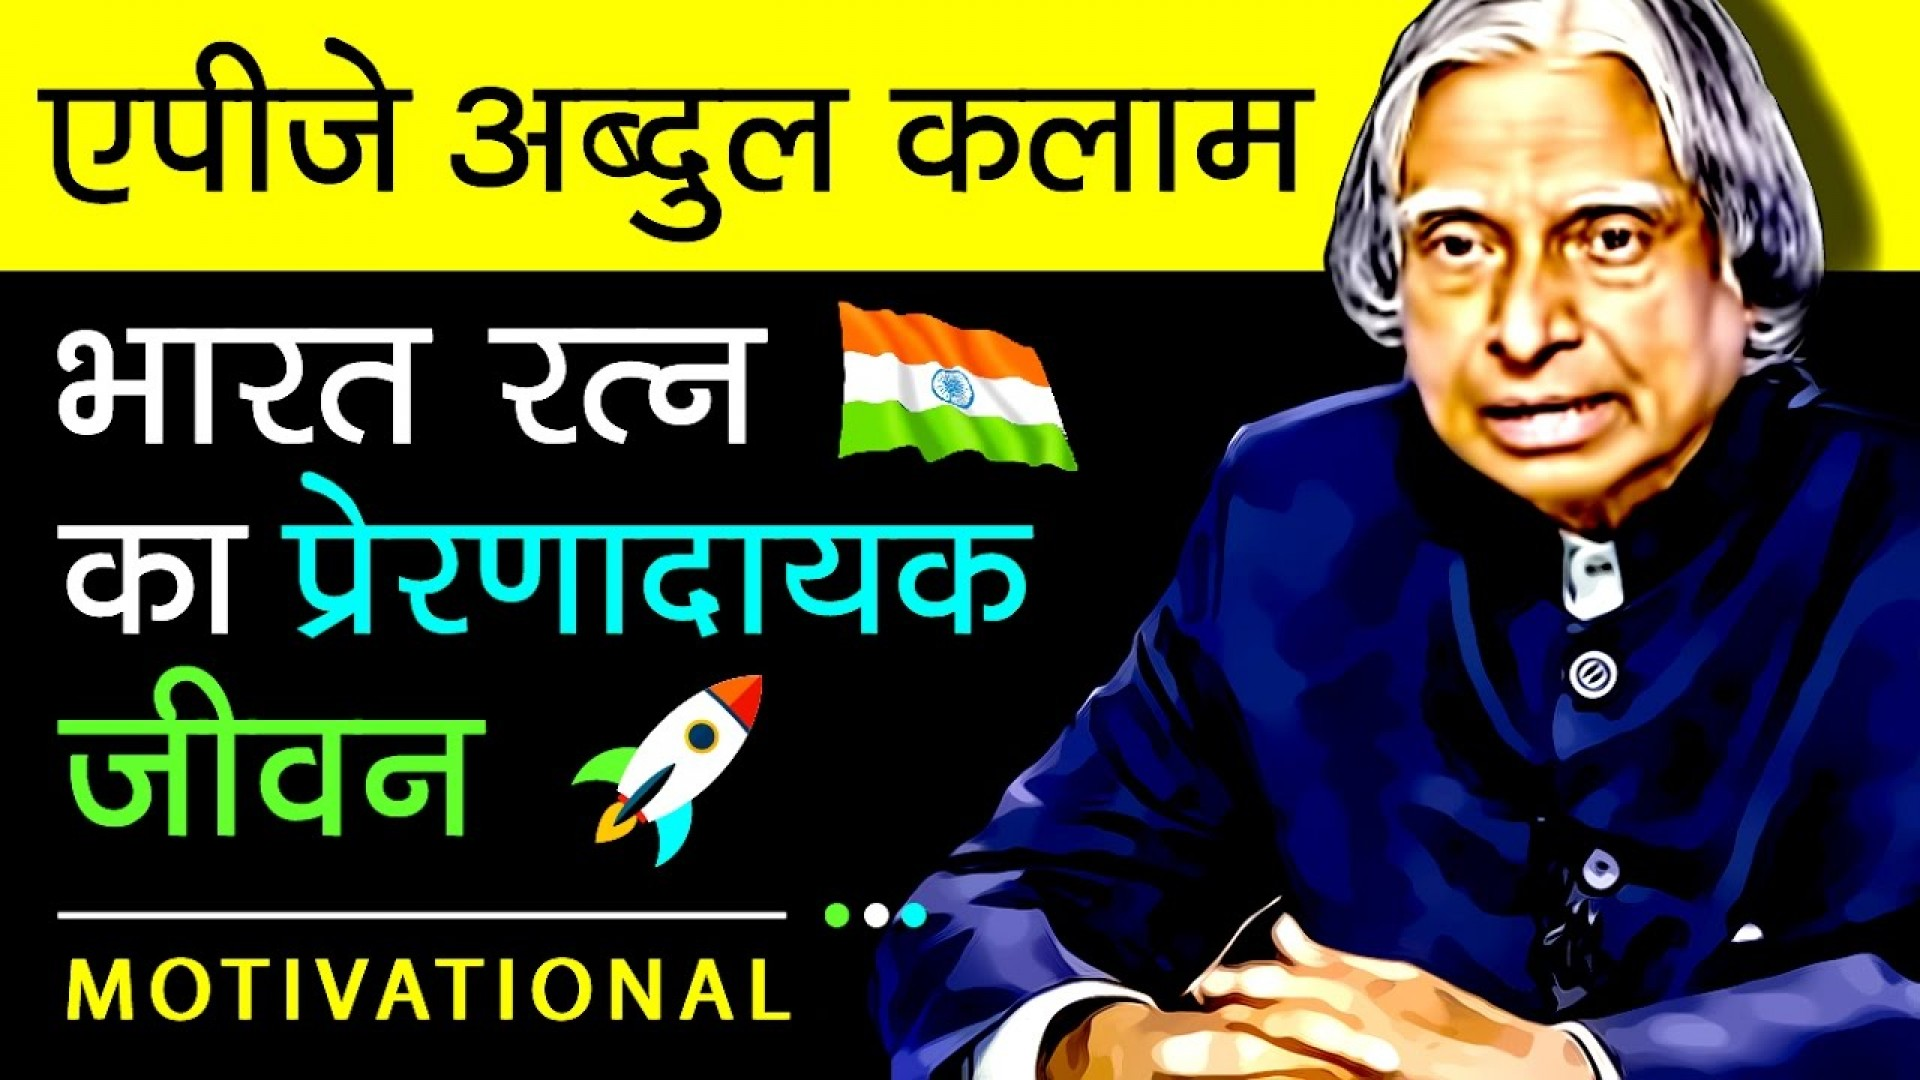 011 Abdul Kalam My Inspiration Essay Example Exceptional In English 400 Words Hindi 1920